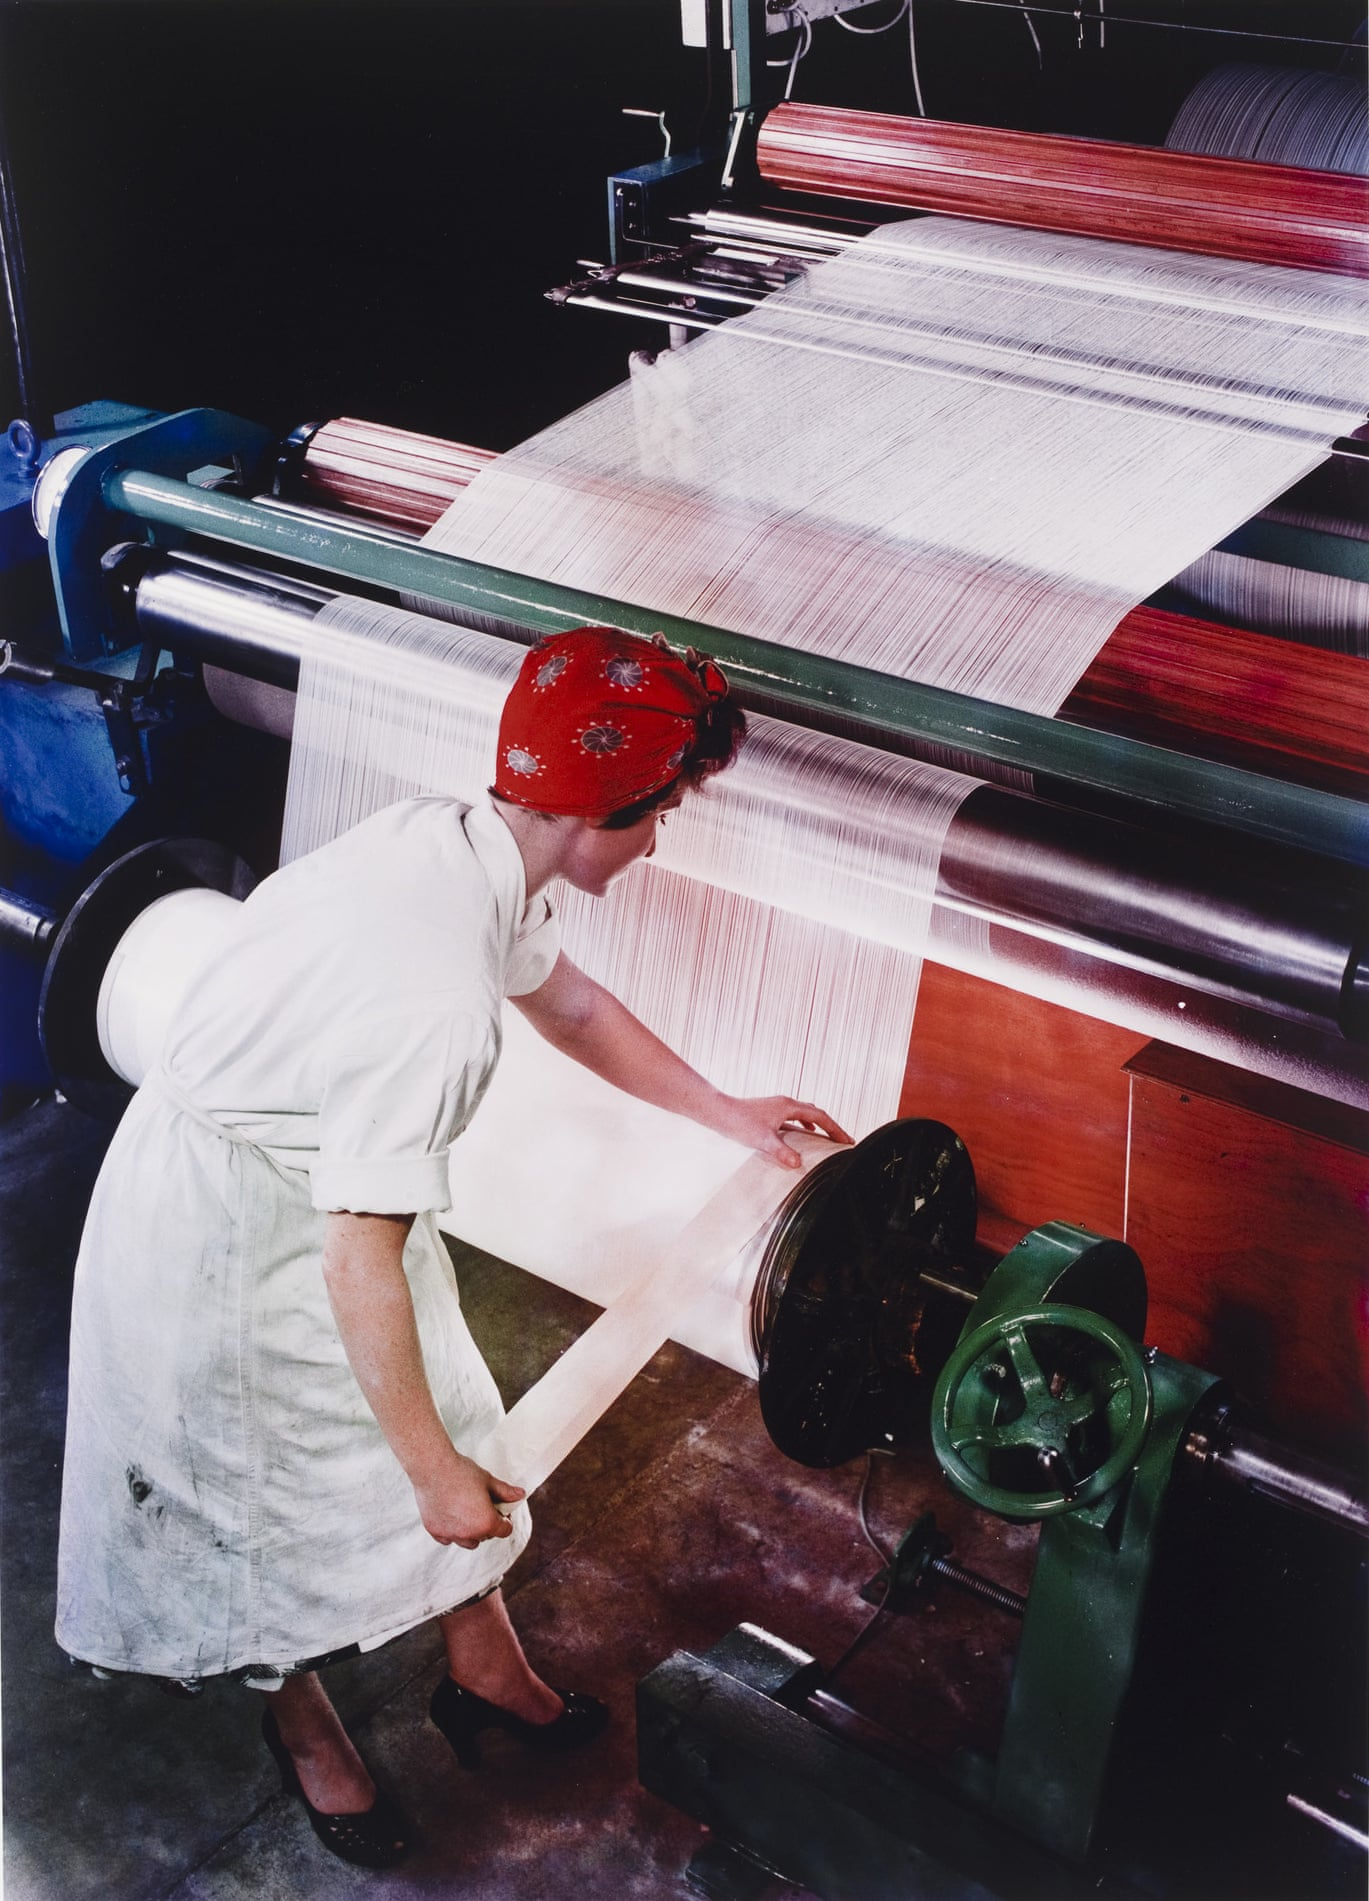 Preparing a Warp from Nylon Yarn, British NylonSpinners, Pontypool, Wales, 1964. Photograph: Victoria and Albert Museum, London/© Estate of Maurice Broomfield